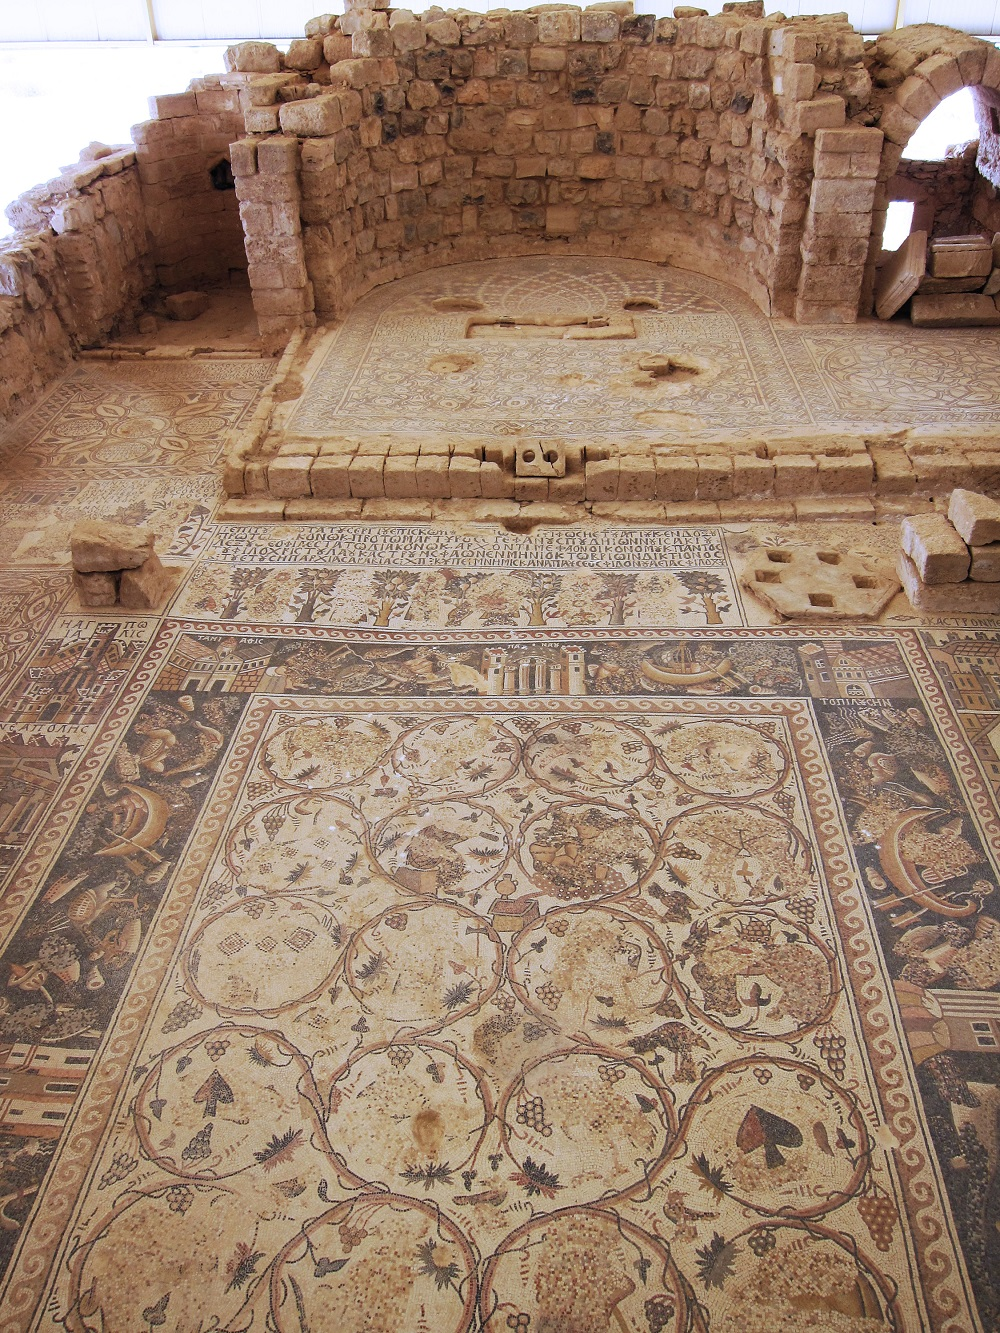 Early Islamic-period mosaic with elaborate floral and Nilotic mosaics   Church of St. Stephen, Umm ar-Rasas    Image Source